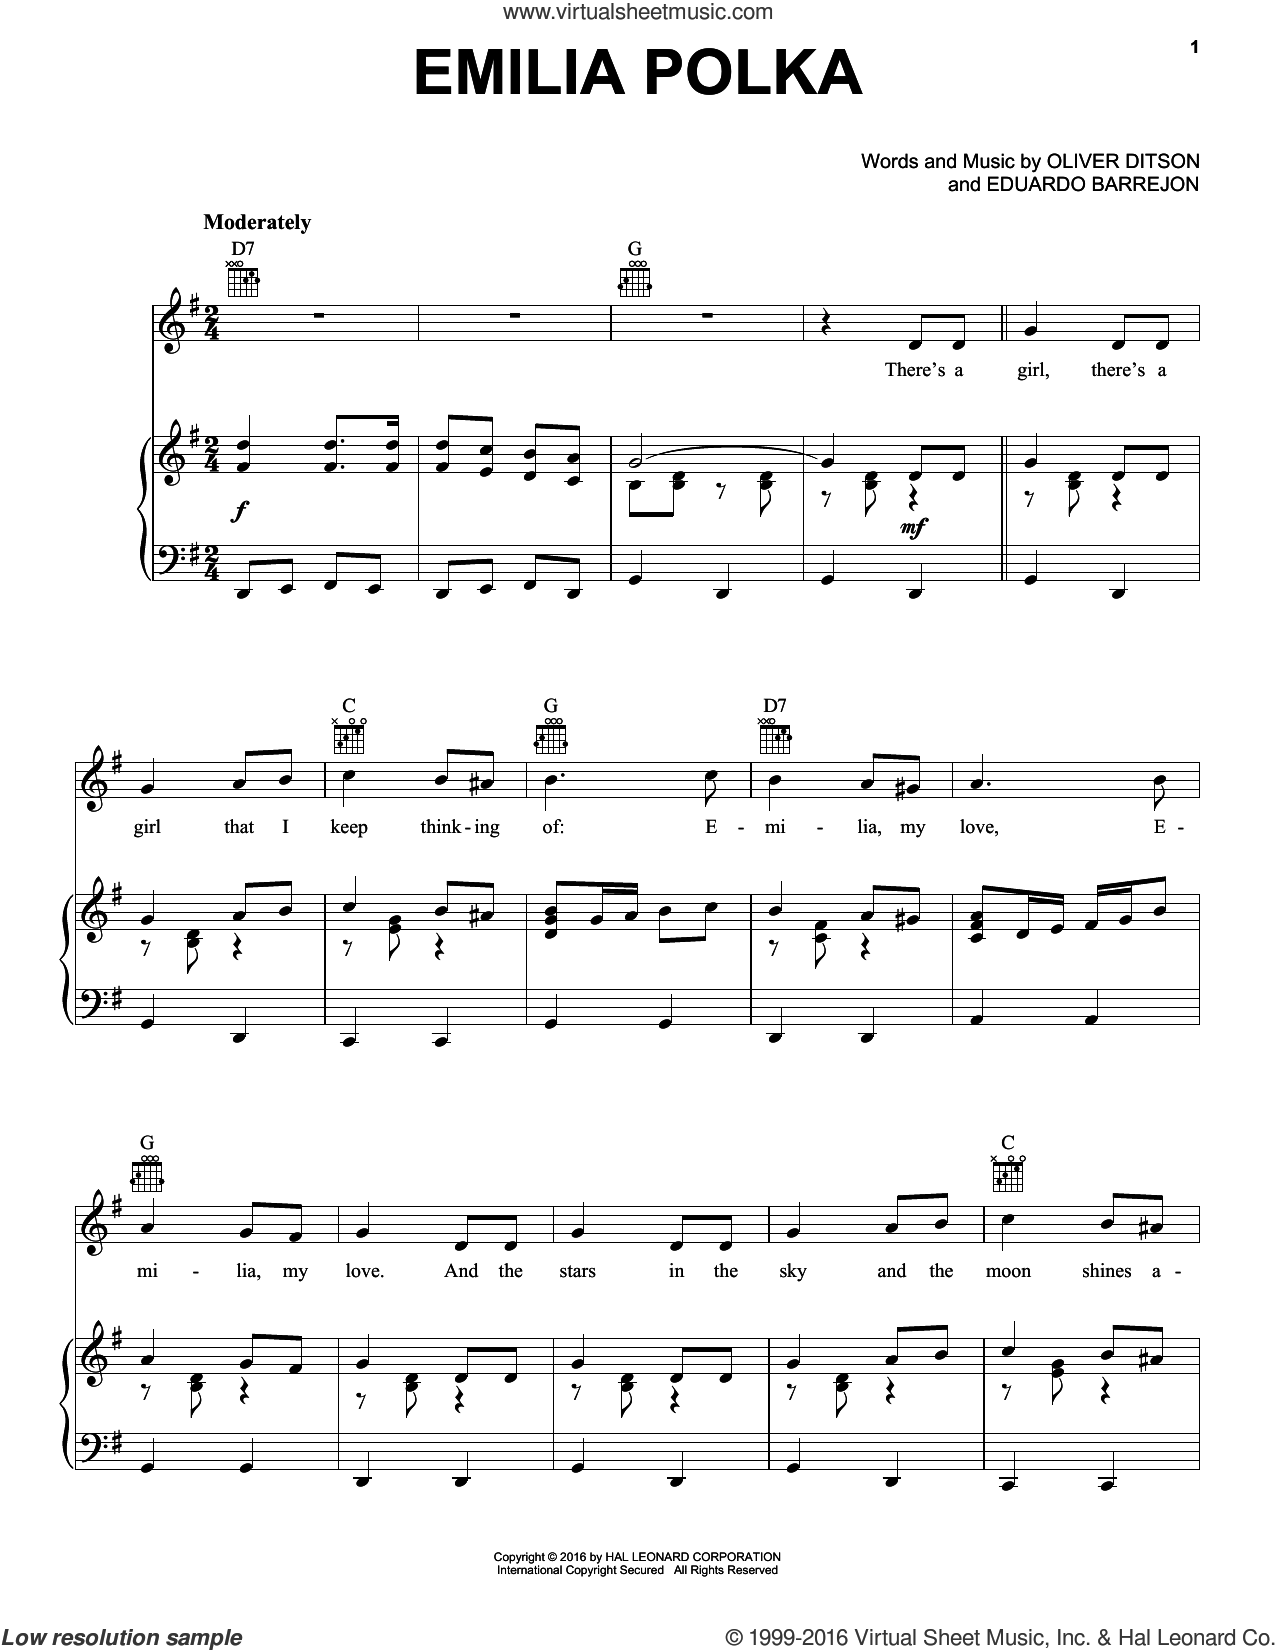 Emilia Polka sheet music for voice, piano or guitar by Oliver Ditson. Score Image Preview.